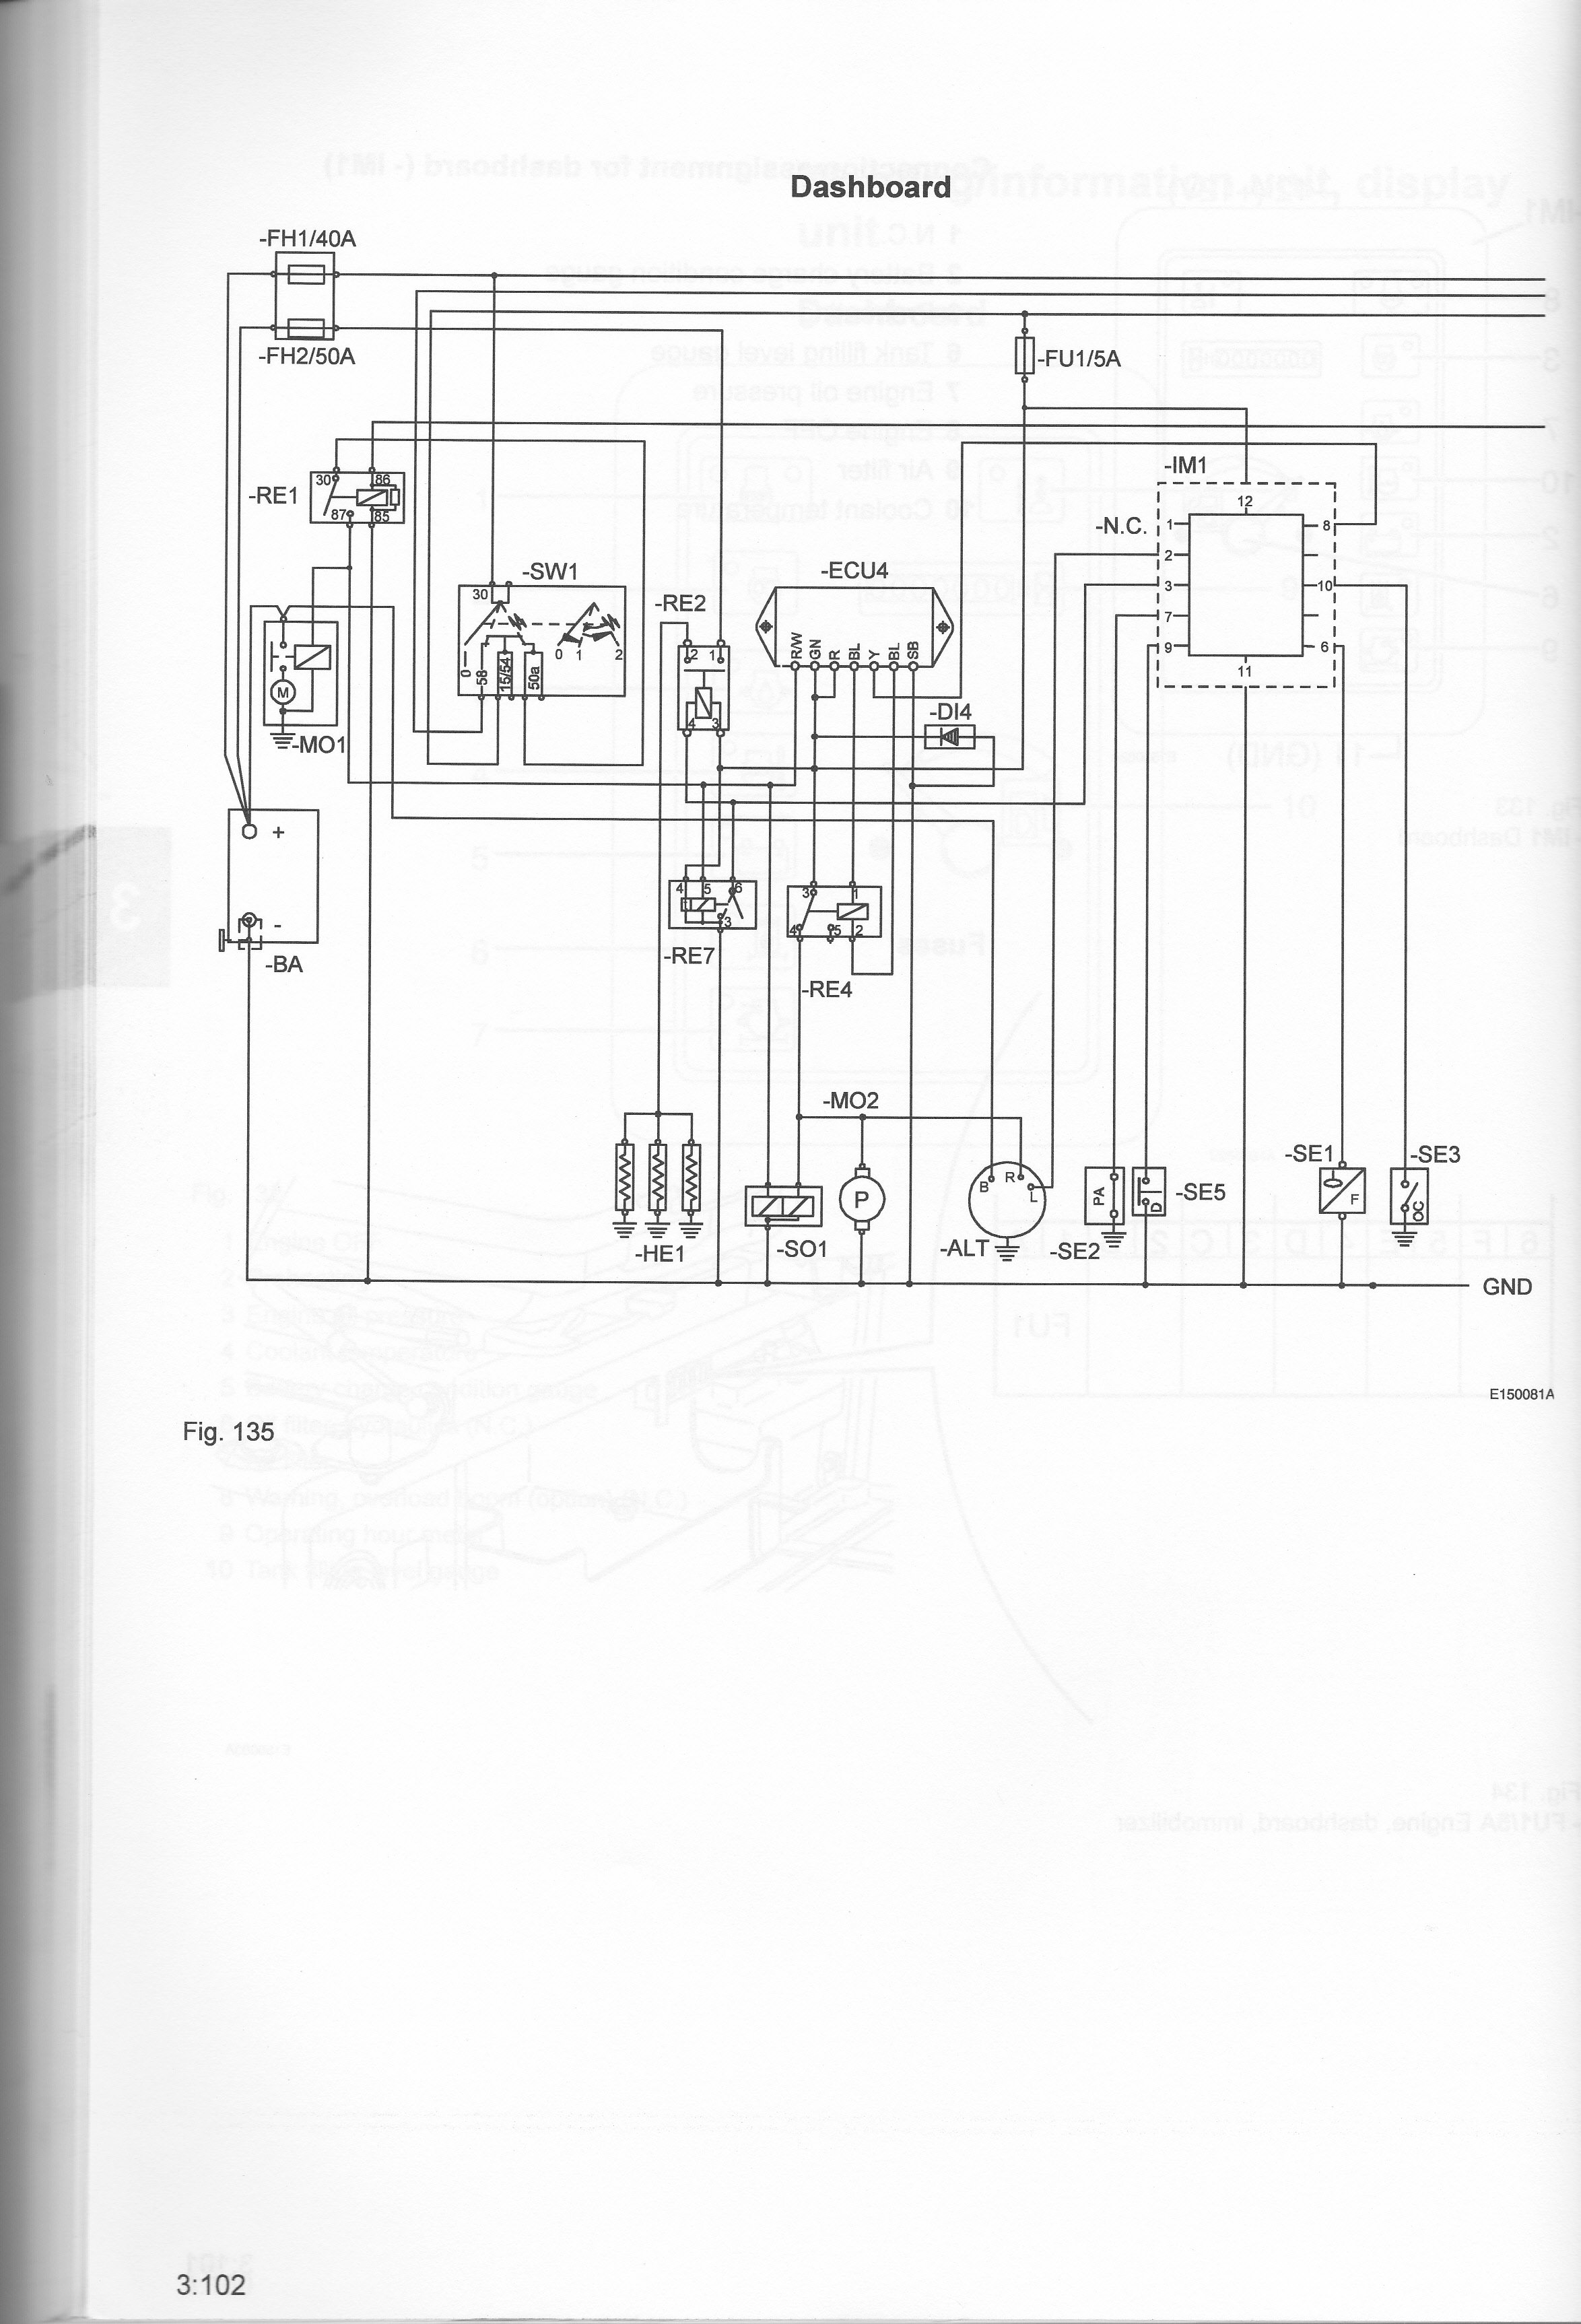 Volvo Ec15b Wiring Diagram - Wiring Diagram Data path-menu -  path-menu.portorhoca.it | Volvo Ec15b Wiring Diagram |  | path-menu.portorhoca.it